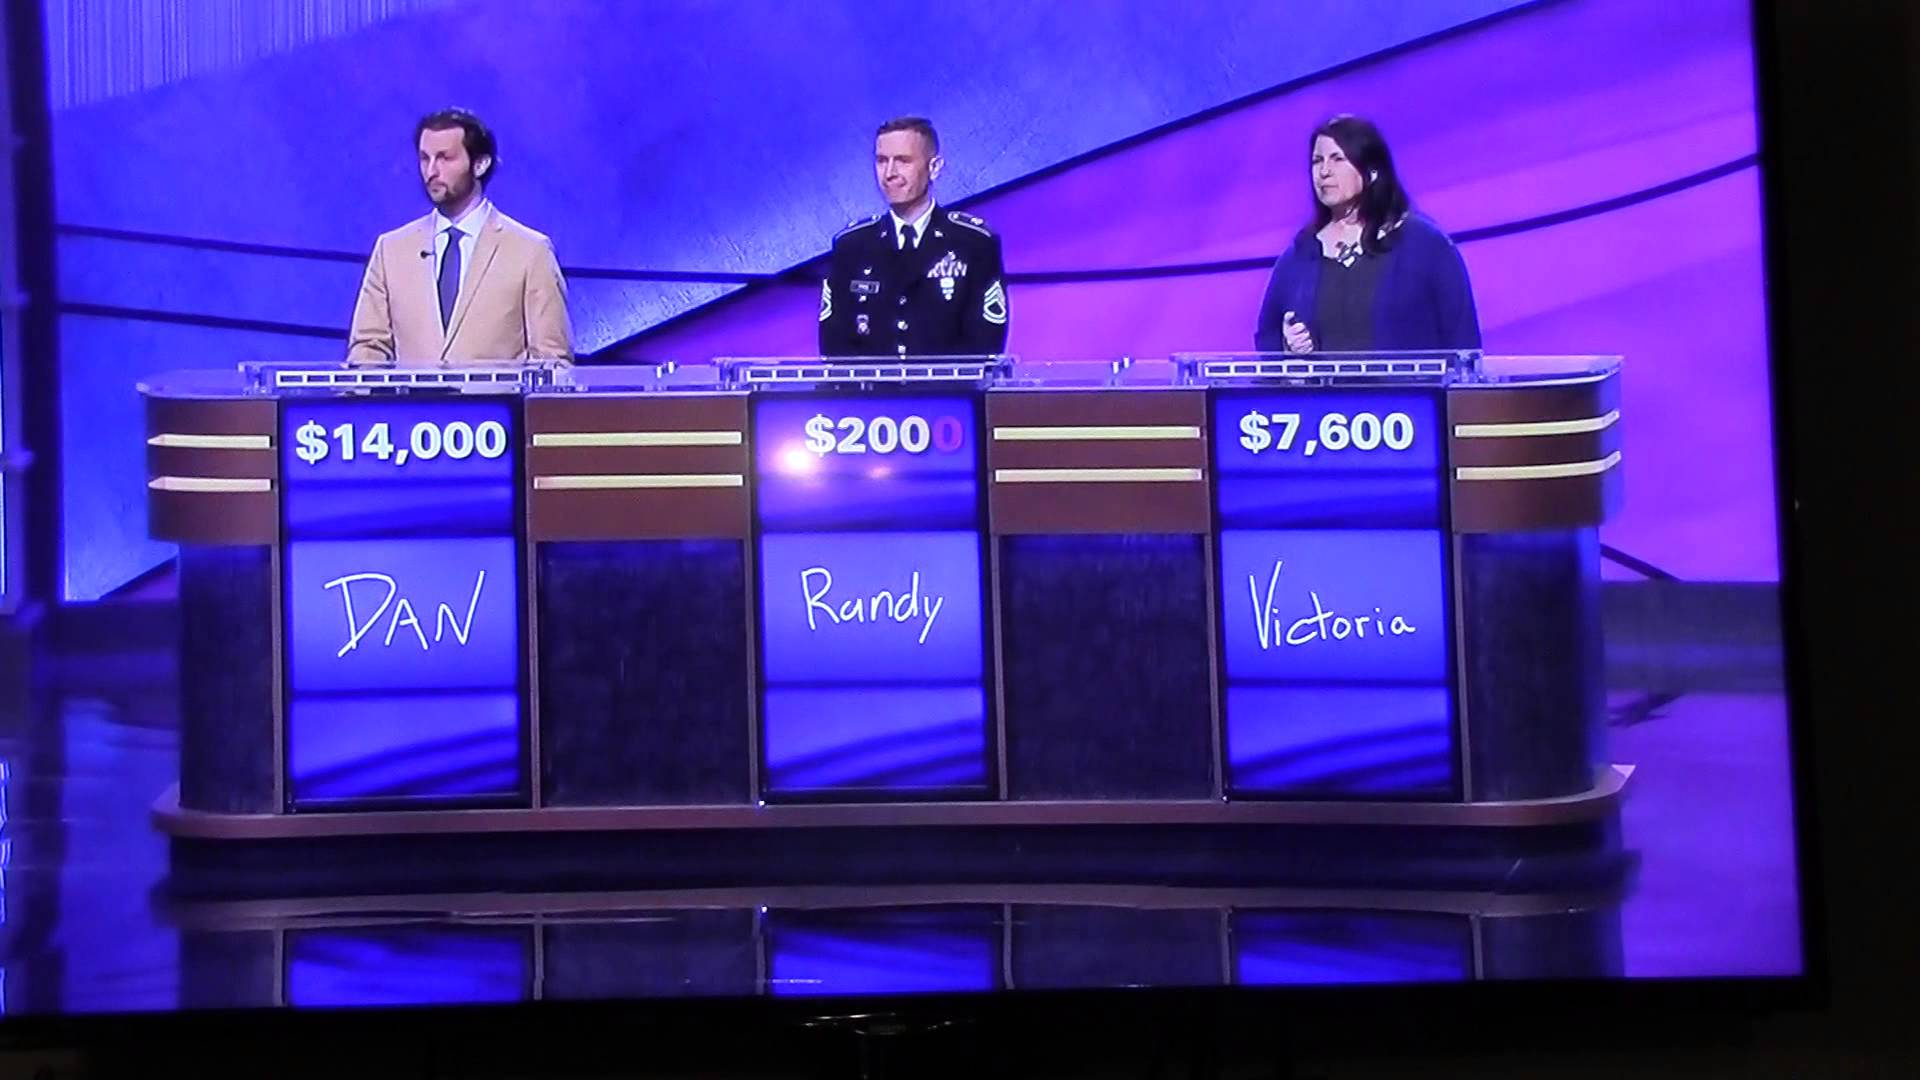 Ken Jennings named as interim Jeopardy! game show host